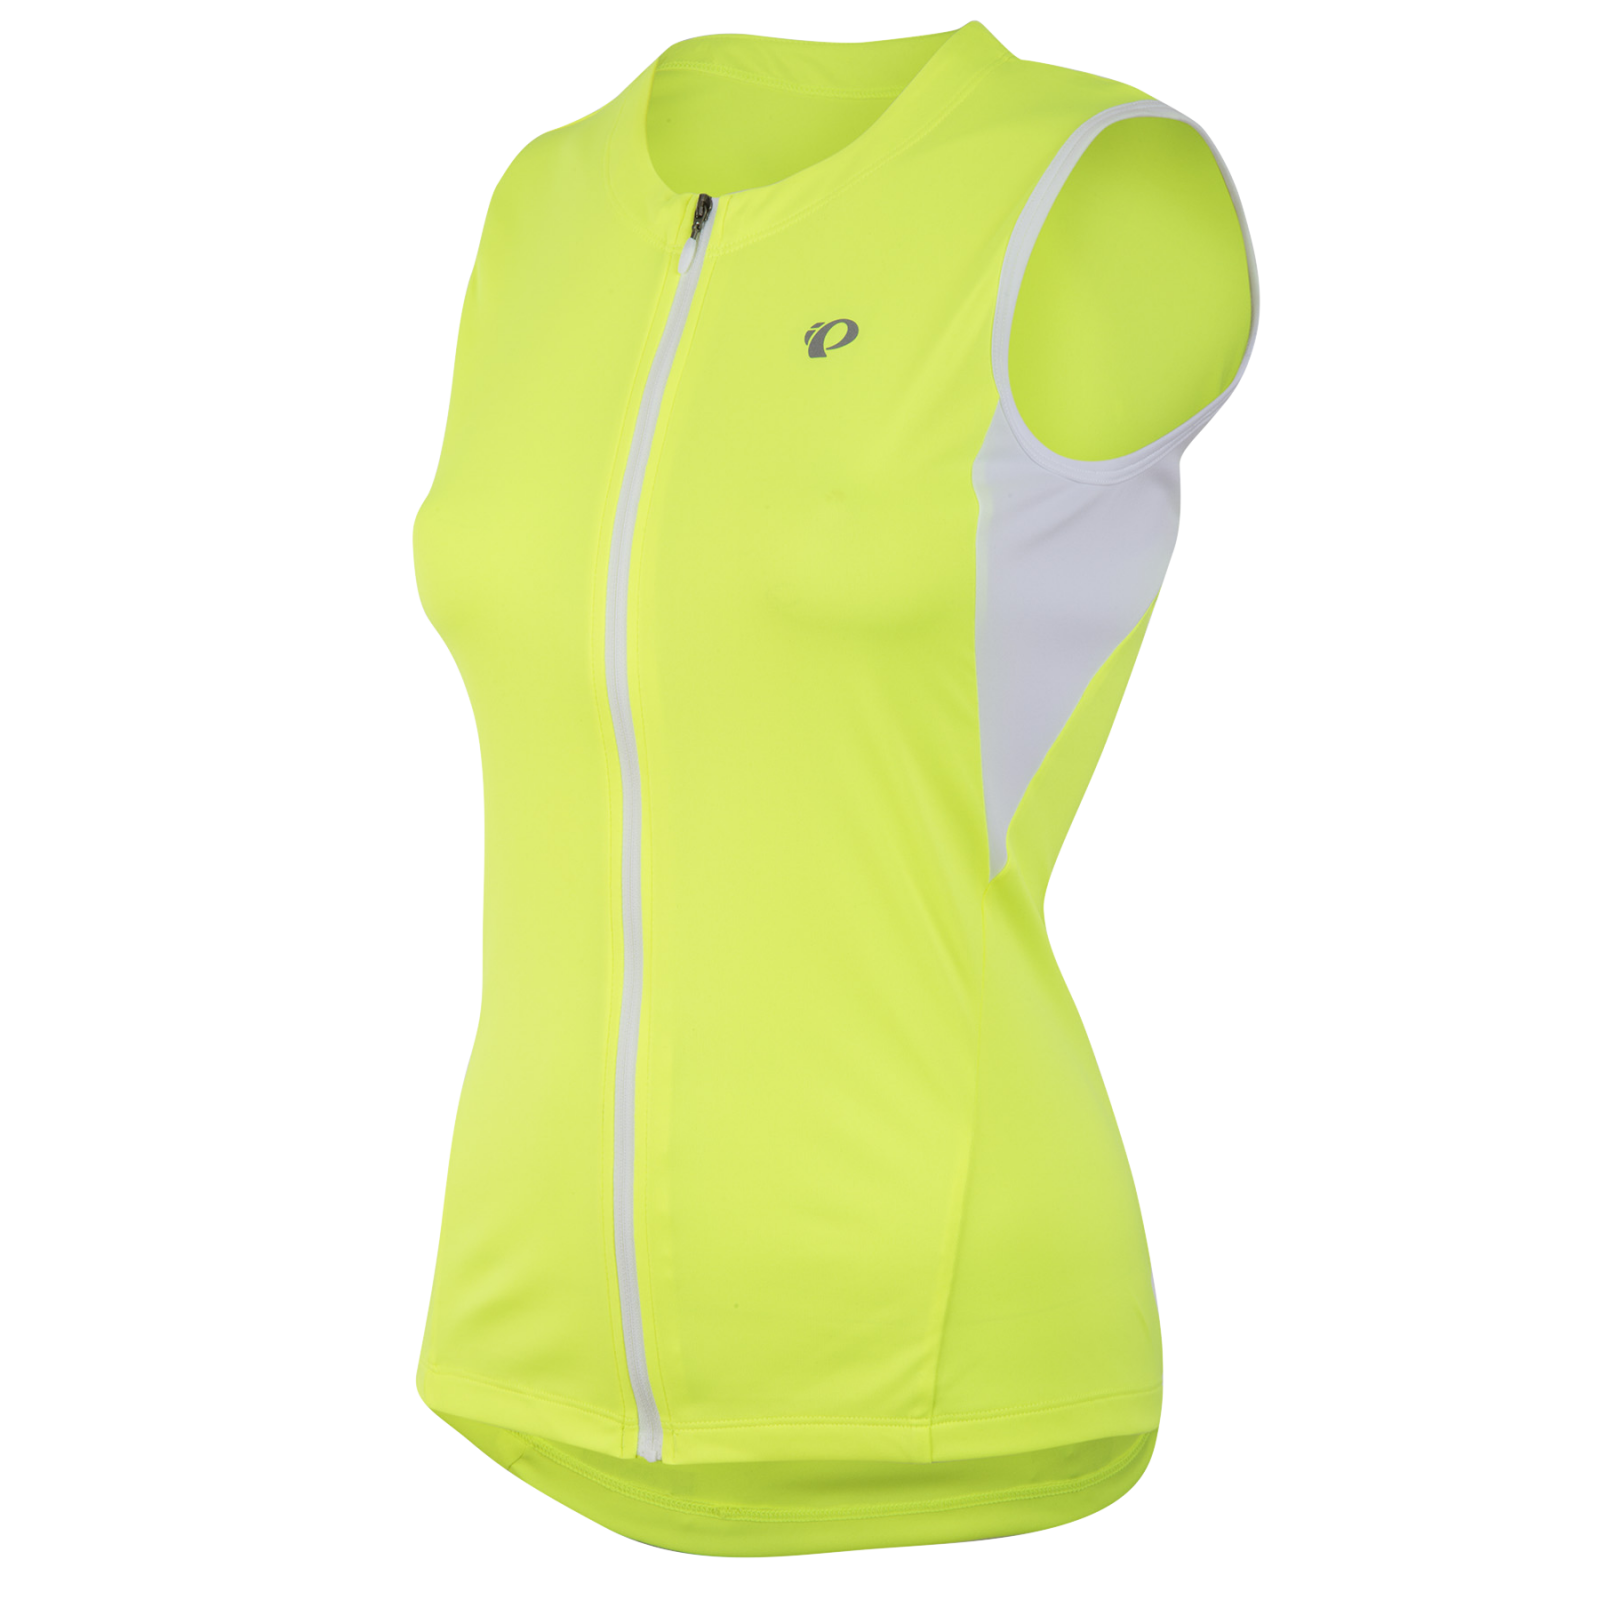 PEARL iZUMi W SELECT dres BR, SCREAMING žlutá, M